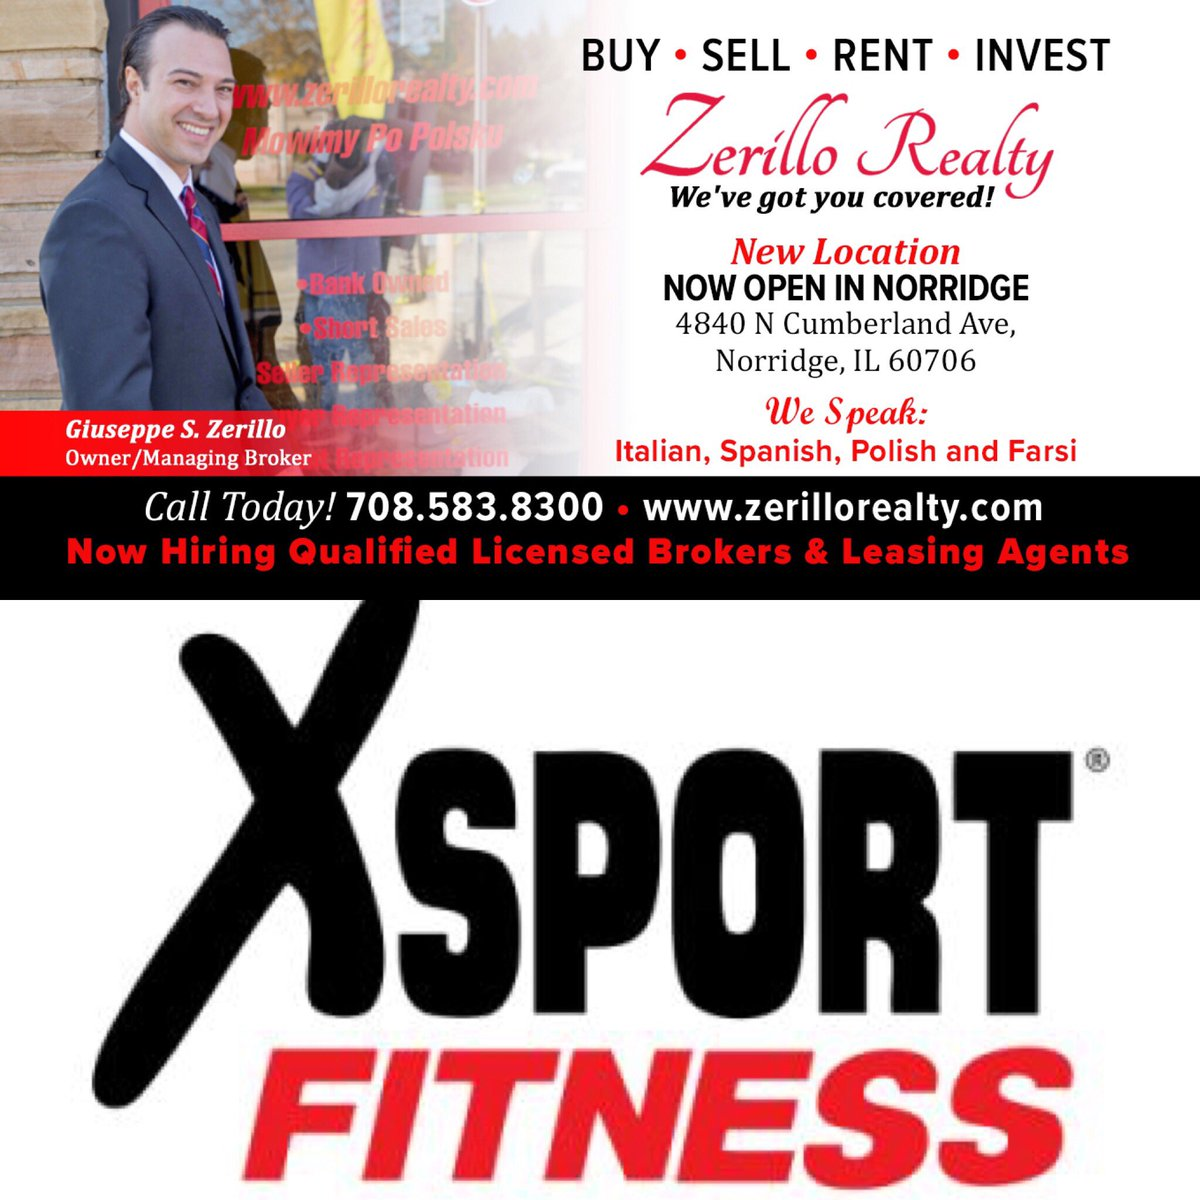 to become an official partner of x sport fitness i look forward to what this will bring between our 2 companies in the near futurepictwittercom